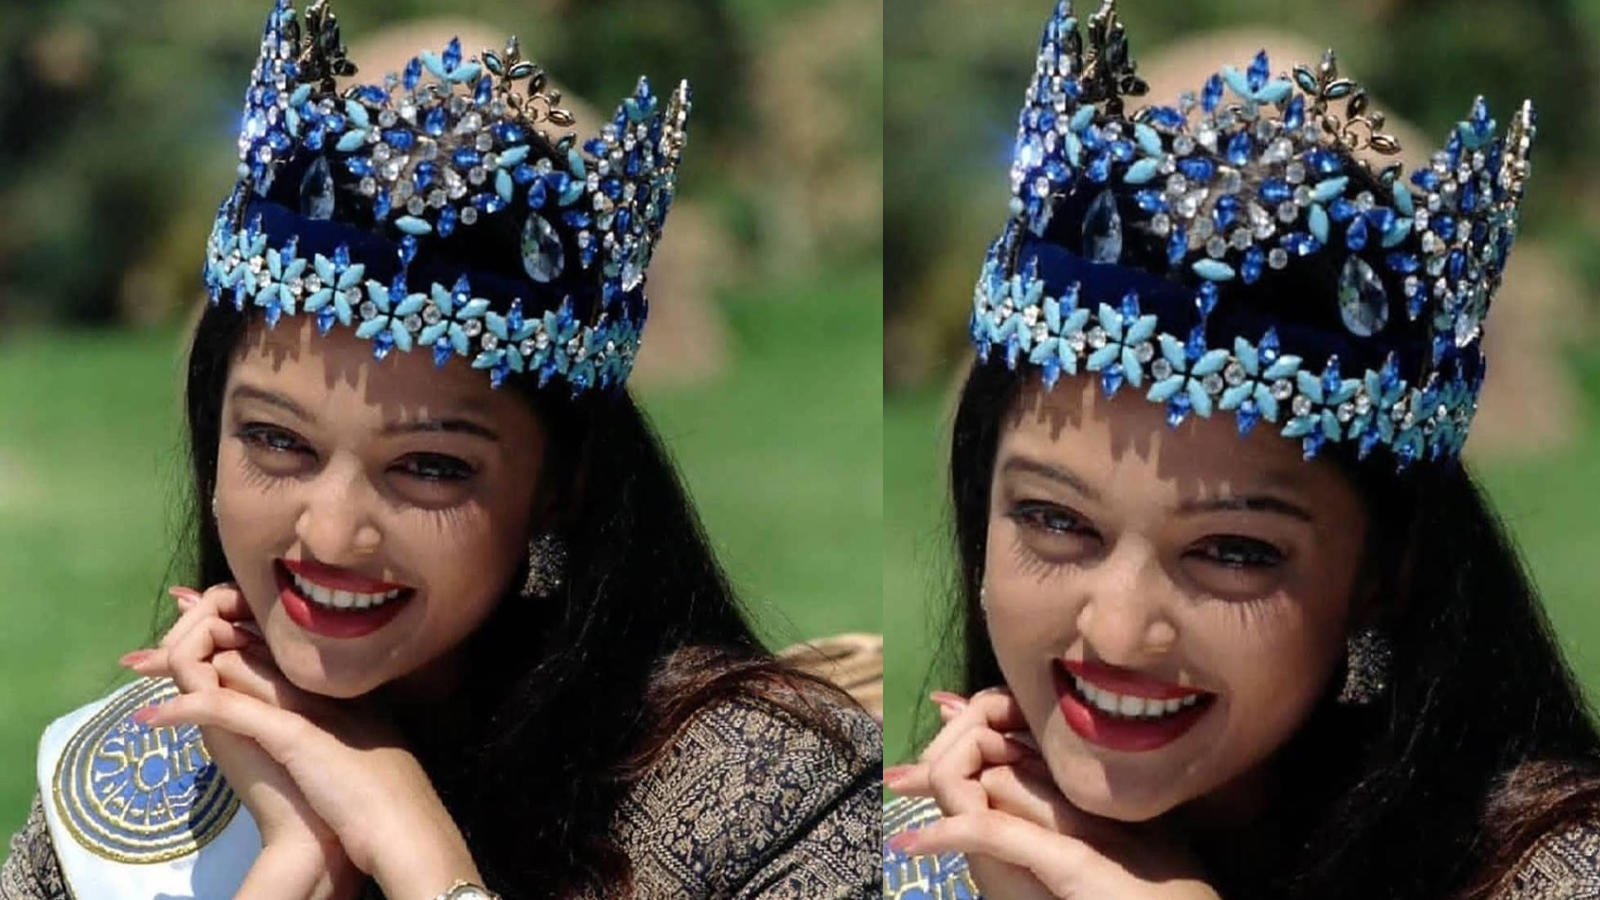 aishwarya-rai-bachchan-personifies-beauty-and-grace-in-this-throwback-picture-wearing-her-miss-world-tiara